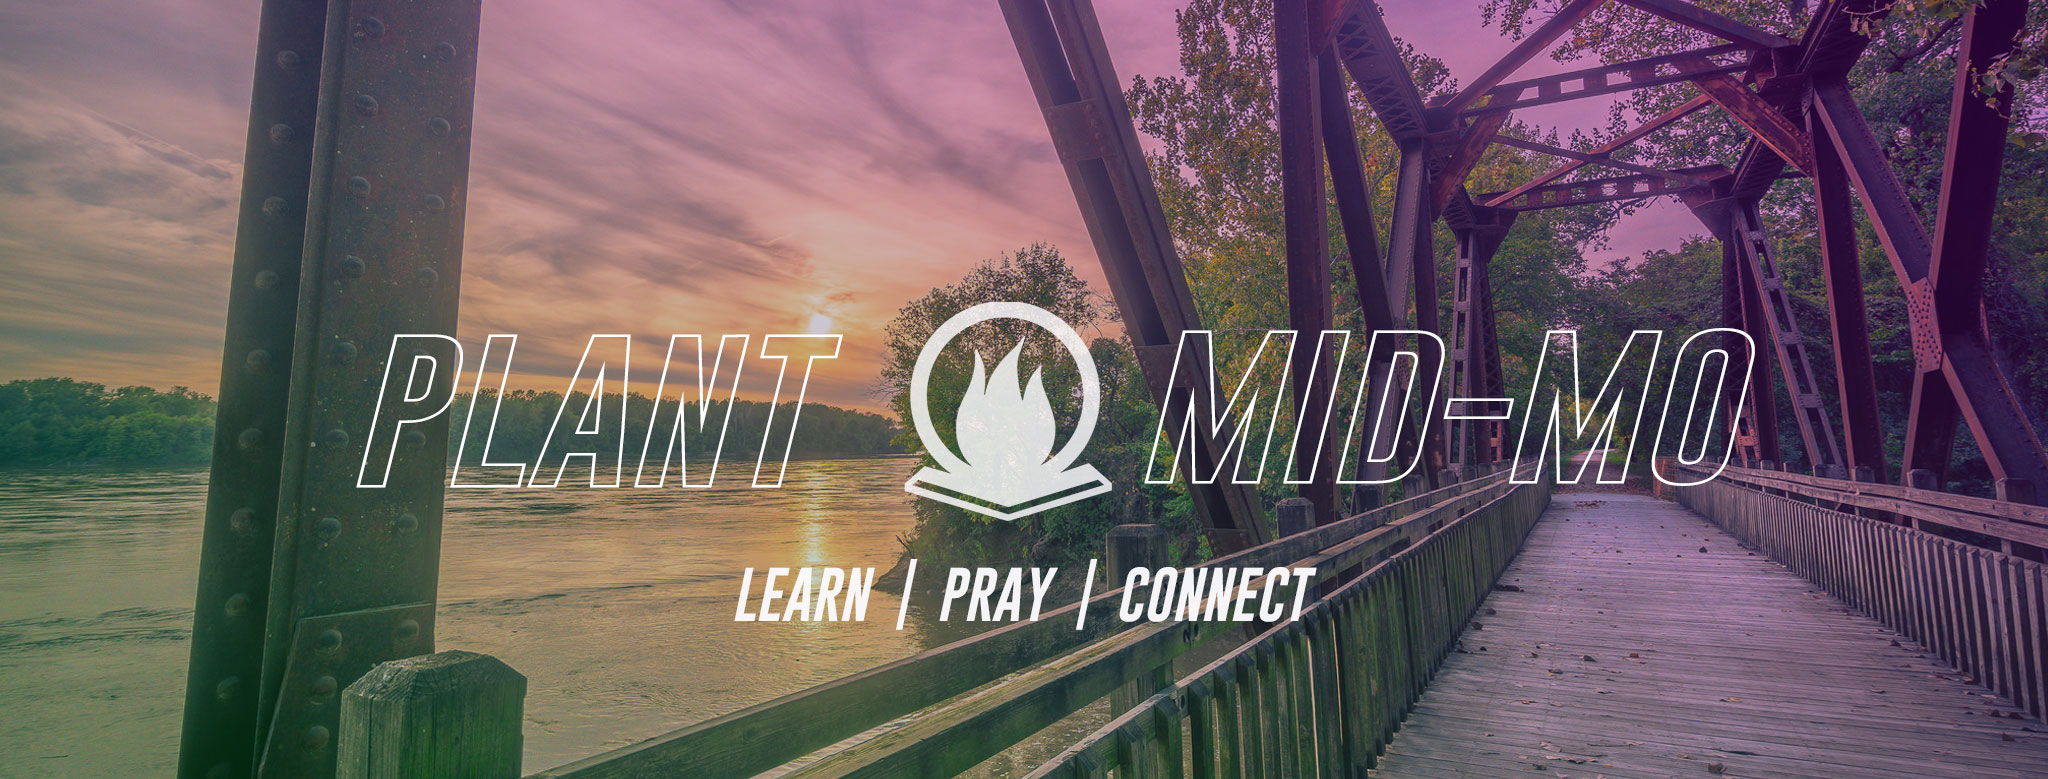 Plant Mid-Mo - Plant Mid-MO is a gospel-centered, Holy Spirit-empowered, church-planting movement that helps leaders gather to learn, pray, and connect.